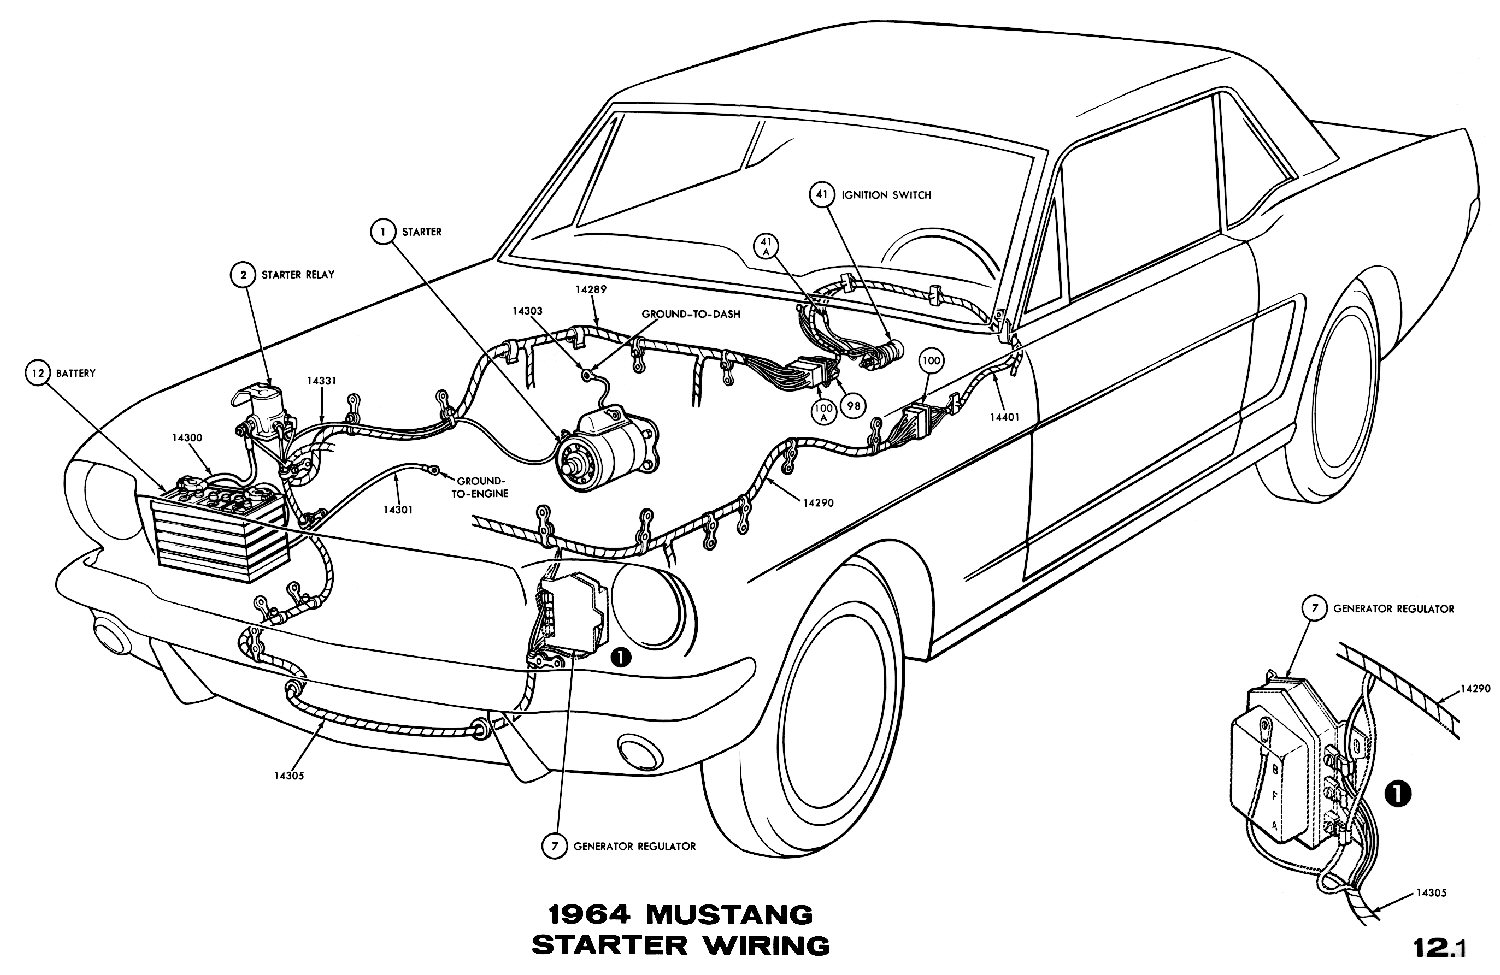 hight resolution of sm1964d 1964 mustang starter wiring pictorial or schematic